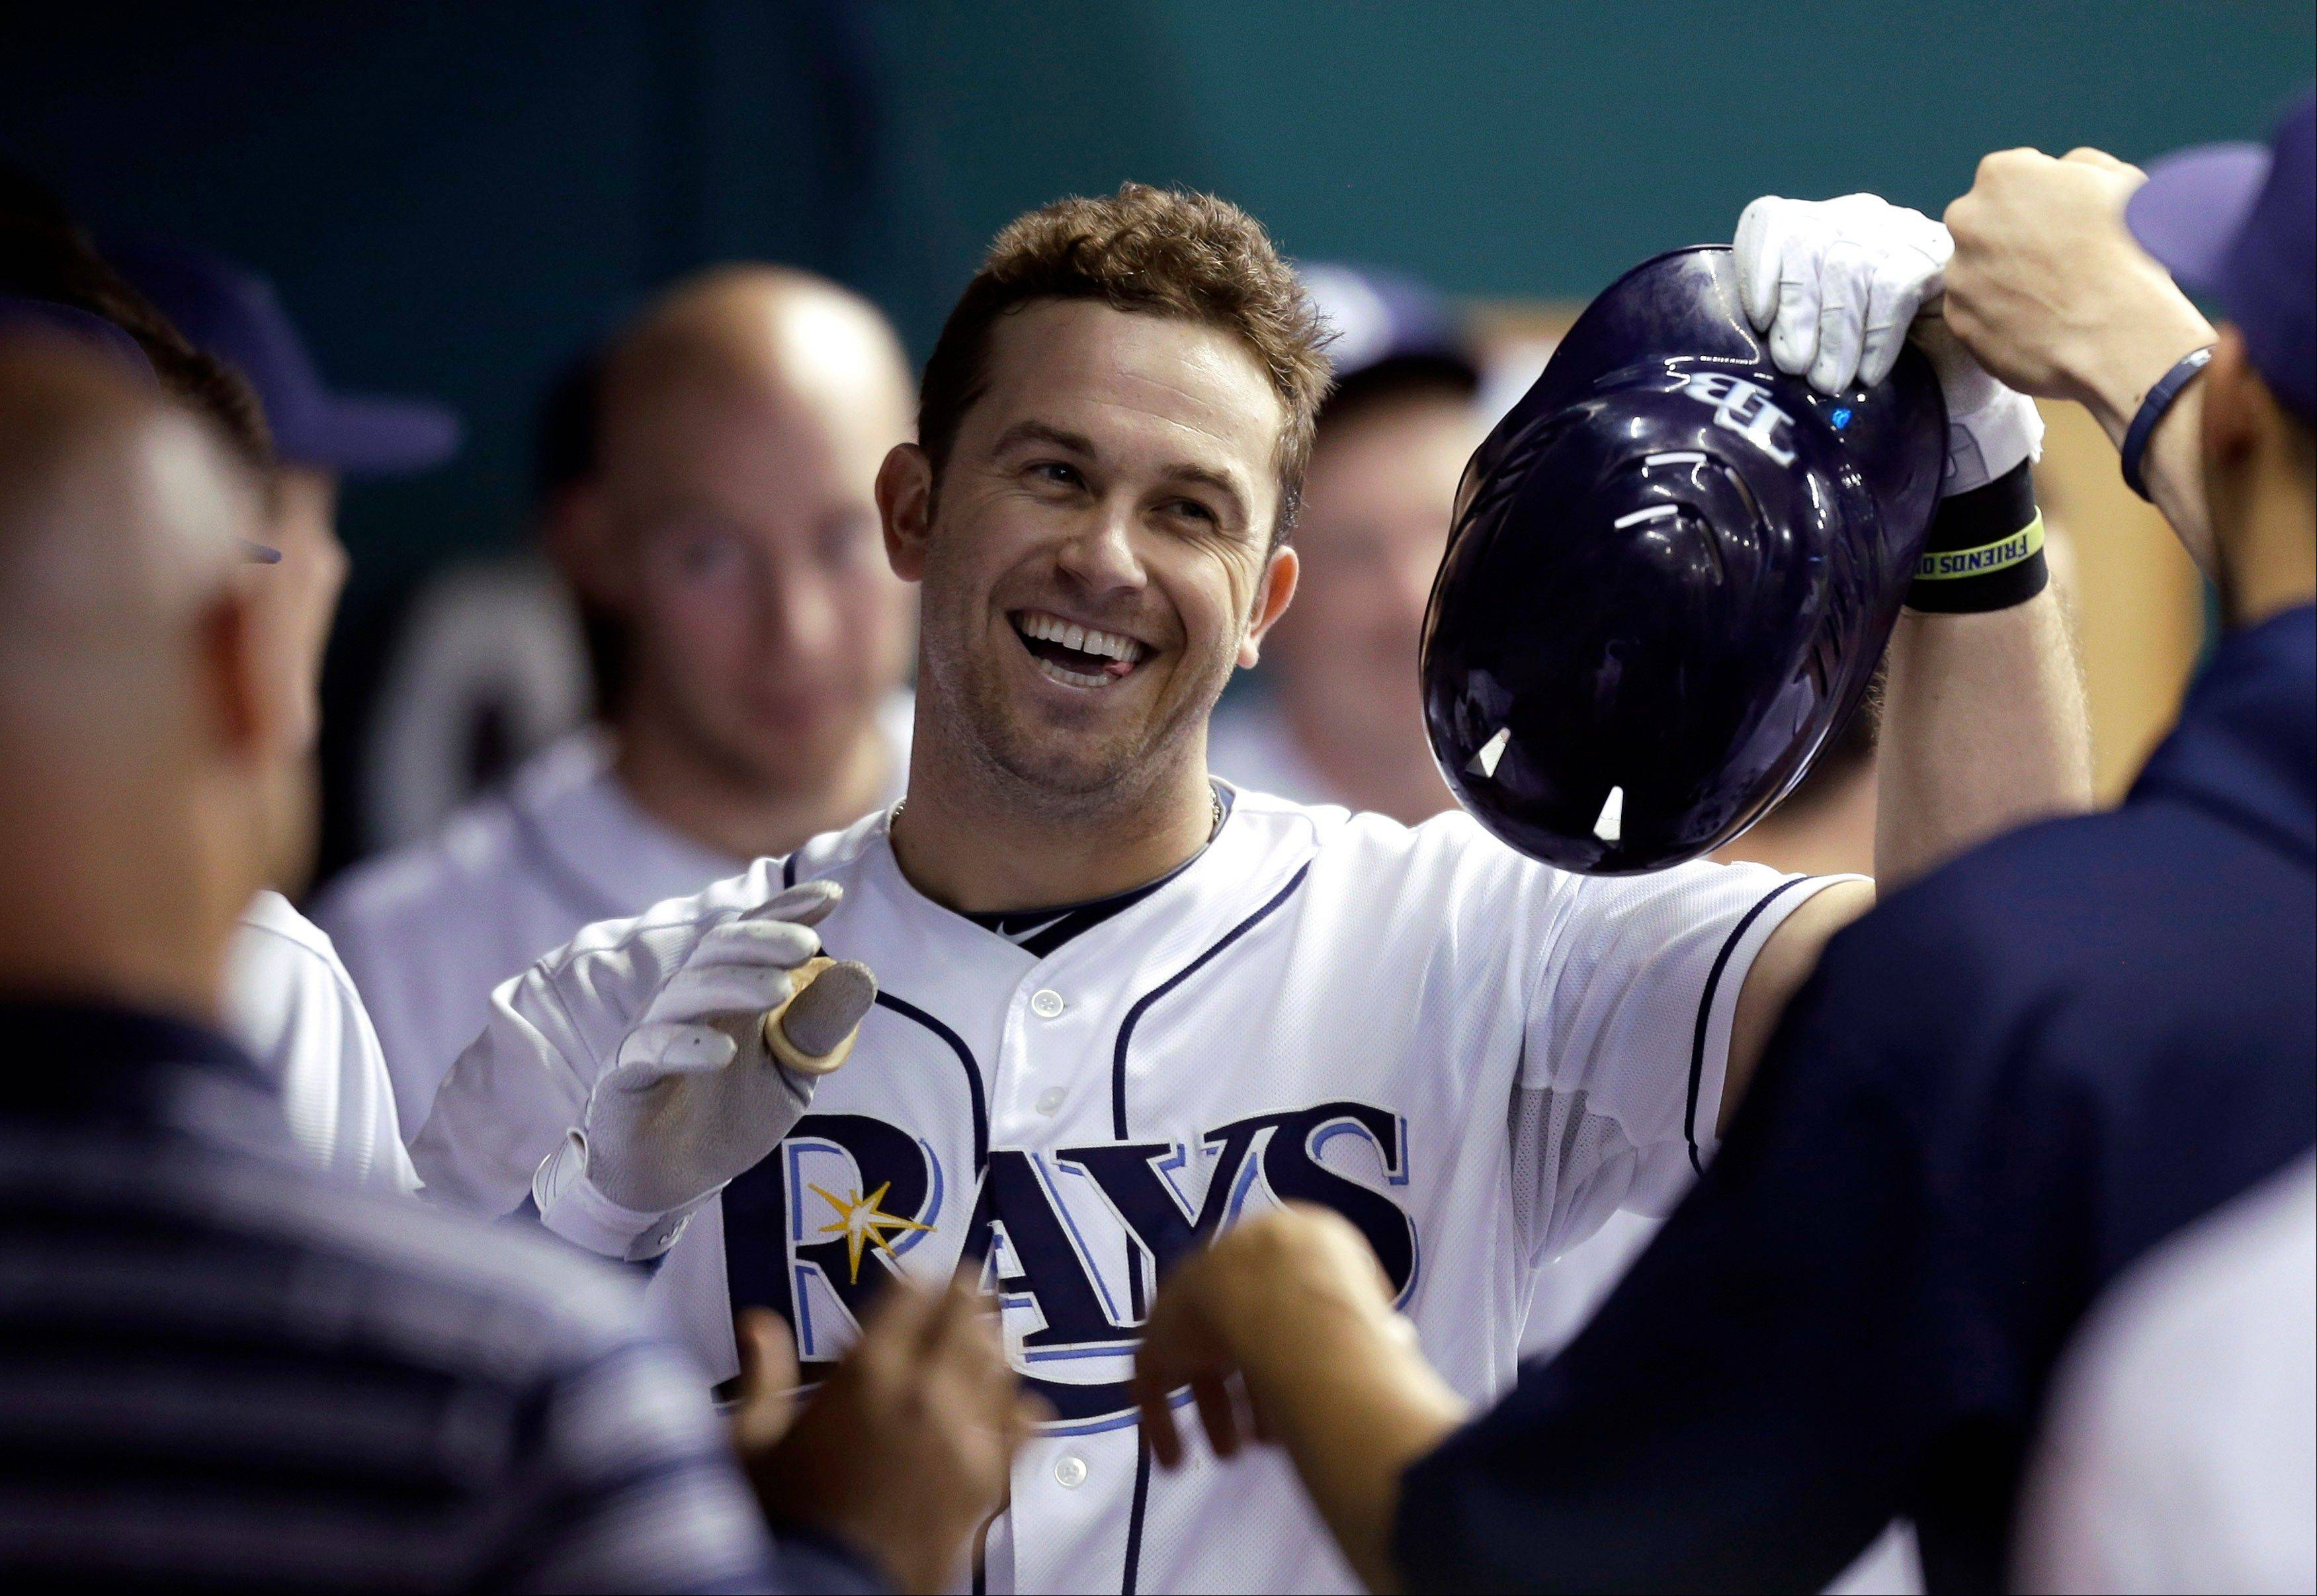 Tampa Bay Rays third baseman Evan Longoria has agreed to a new contract through 2022 that adds six guaranteed seasons and $100 million. The agreement was announced Monday with the three-time all-star.